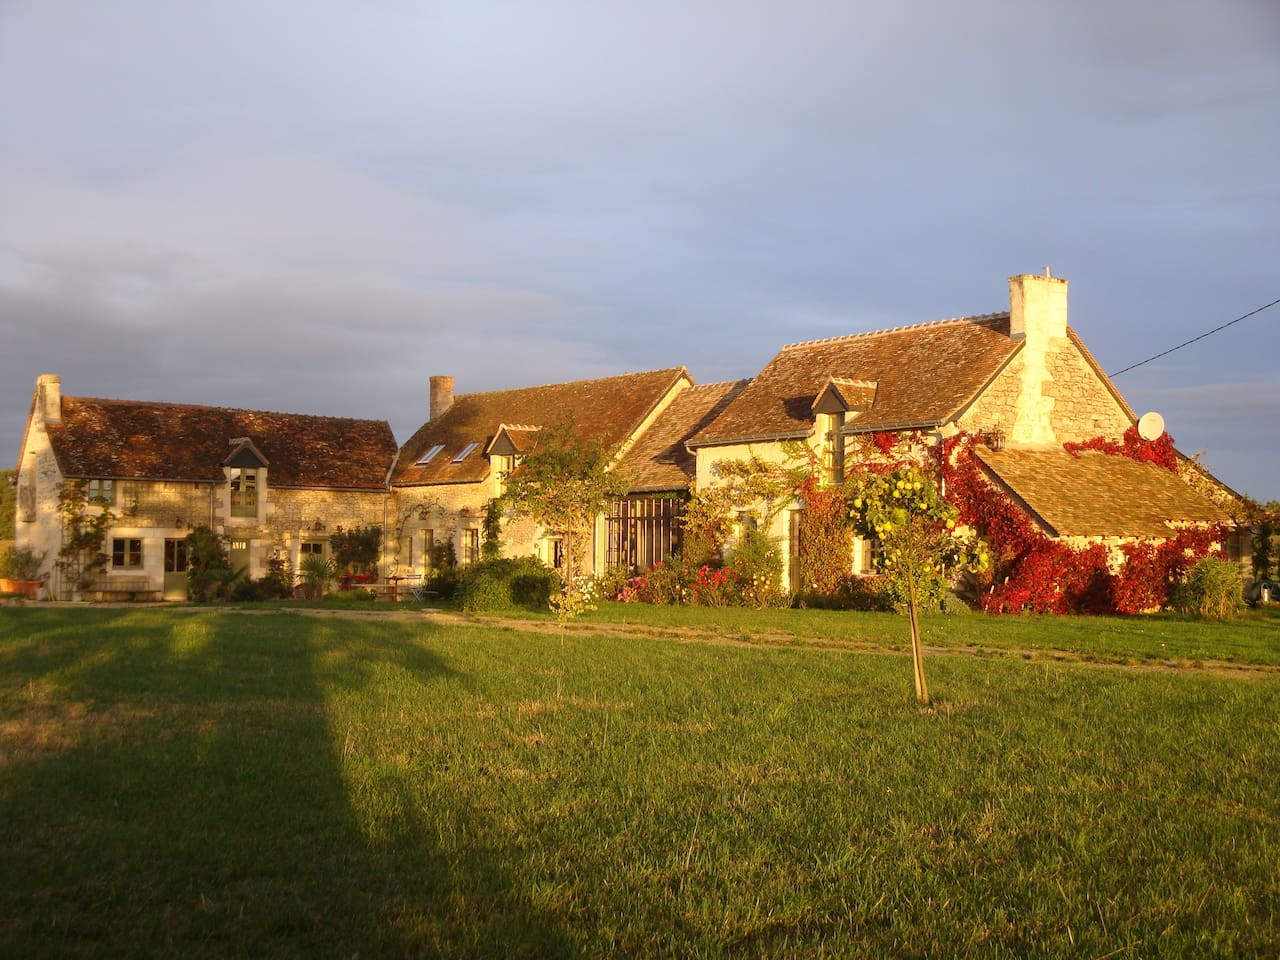 La Baumoderie is a charming cottage situated on a hill in the Vienne valley